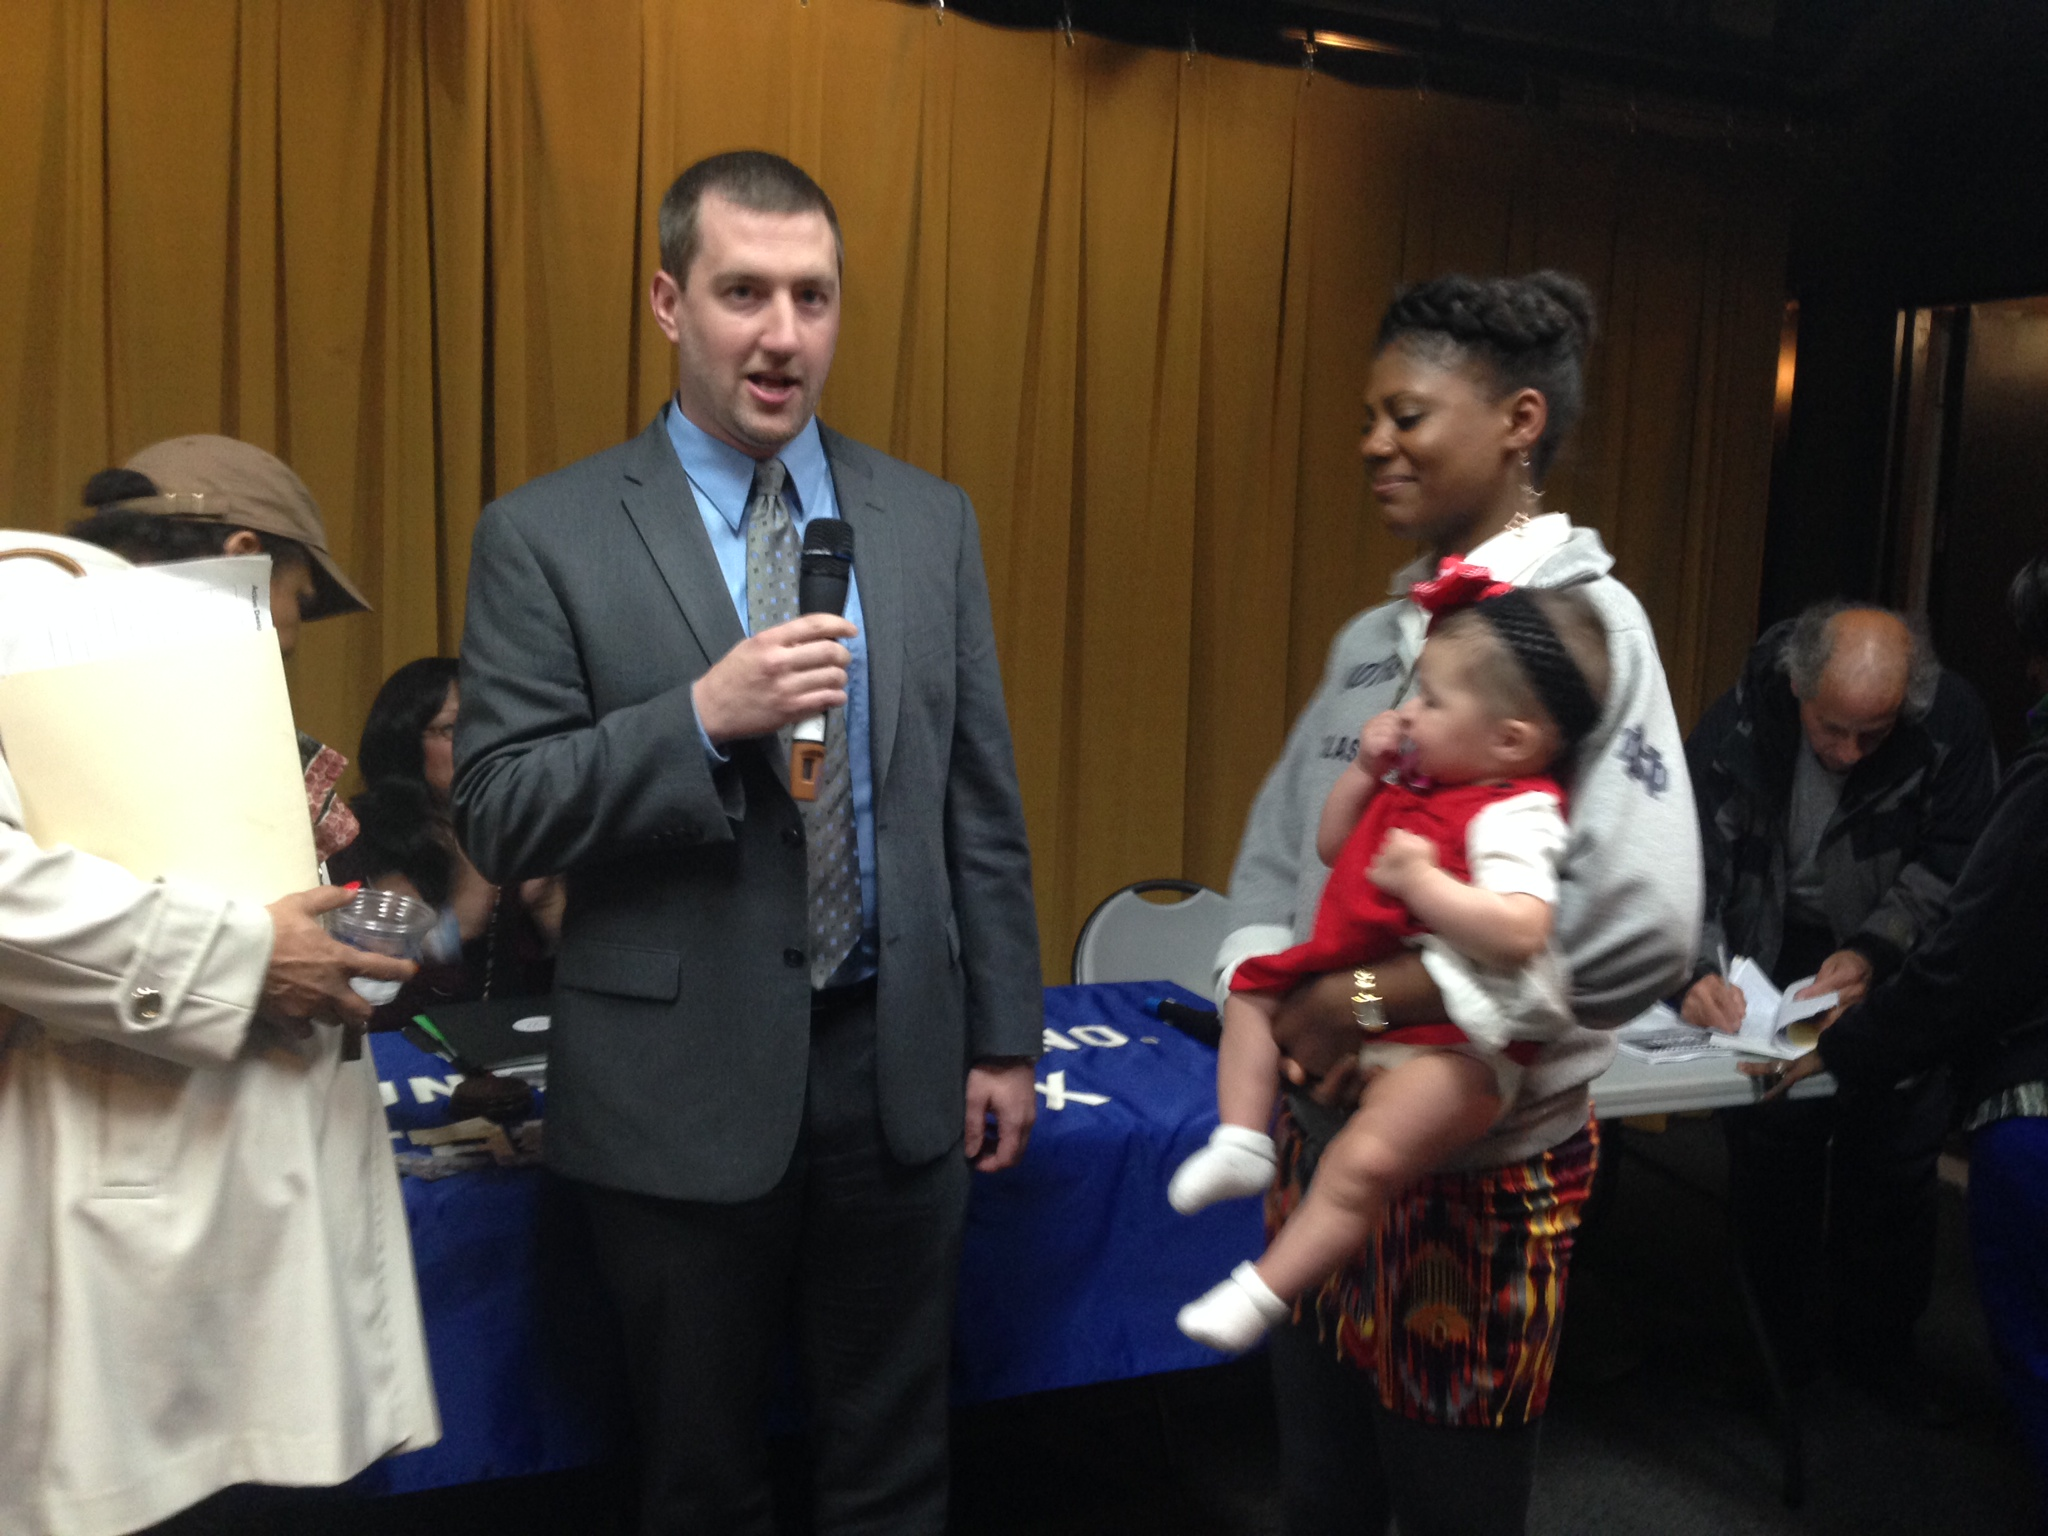 Dustin Engelken accepts the job as district manager of Community Board 7, standing alongside his wife and baby girl. Photo by Justin McCallum